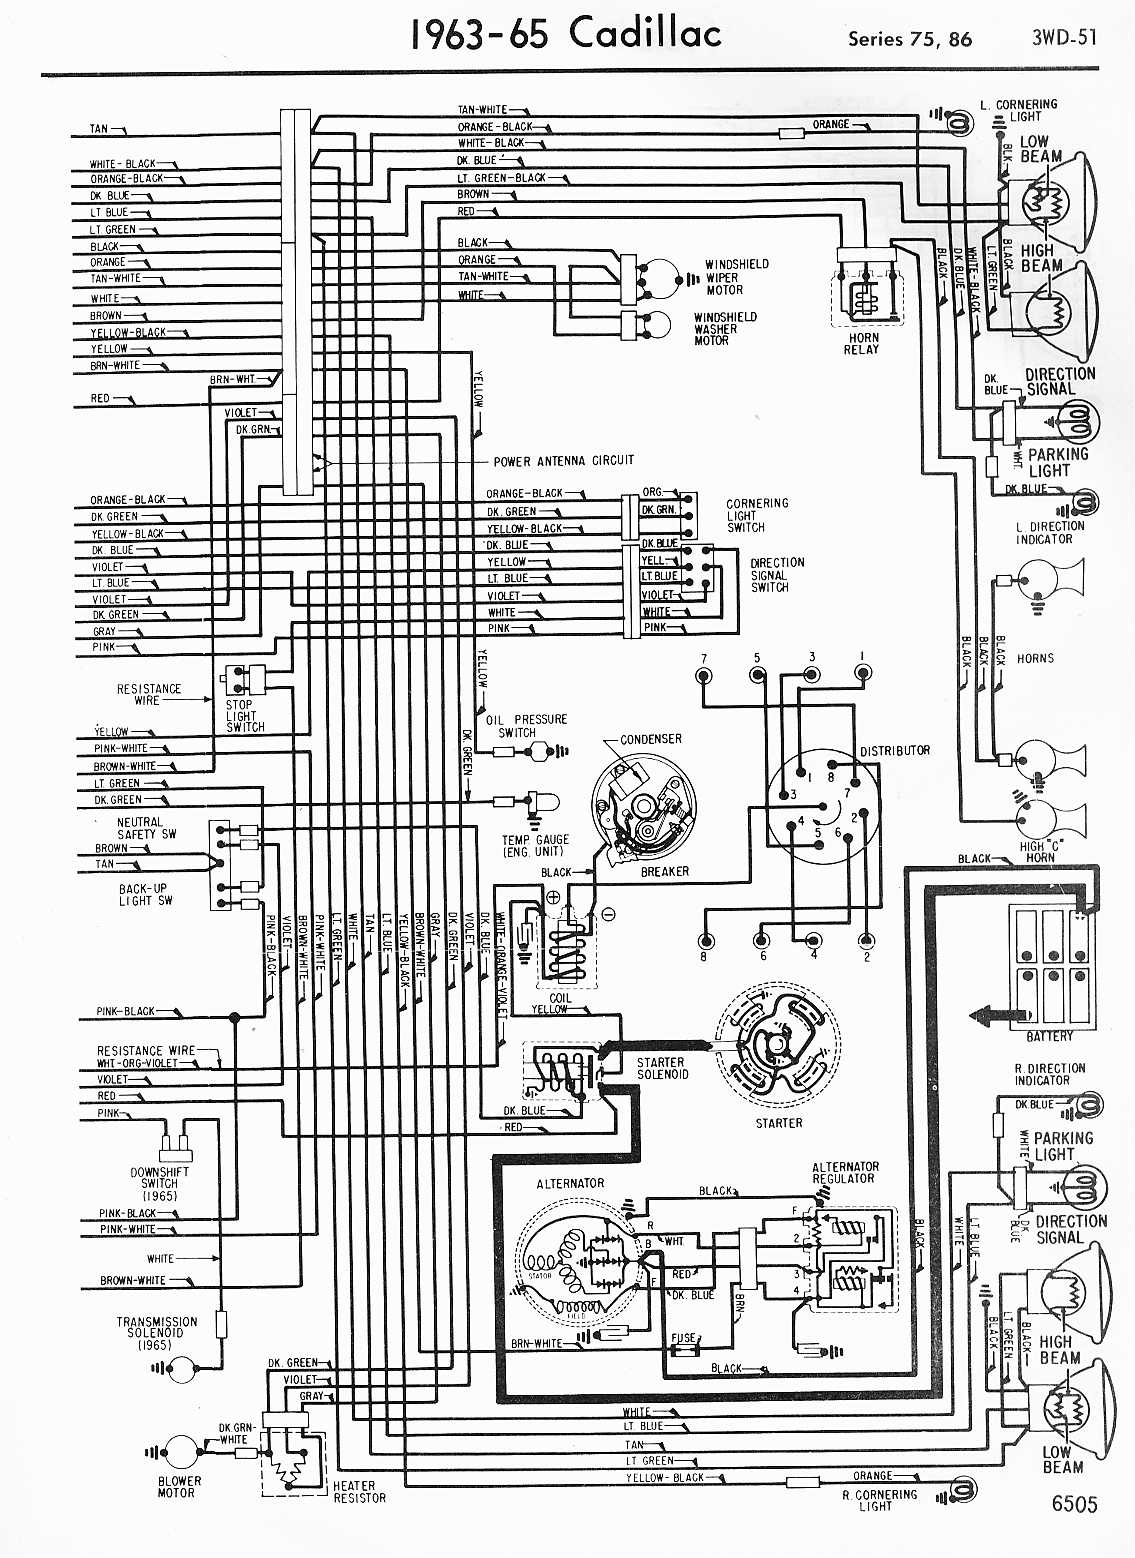 MWireCadi65_3WD 051 cadillac wiring diagrams 1957 1965 cadillac wiring diagrams at bayanpartner.co